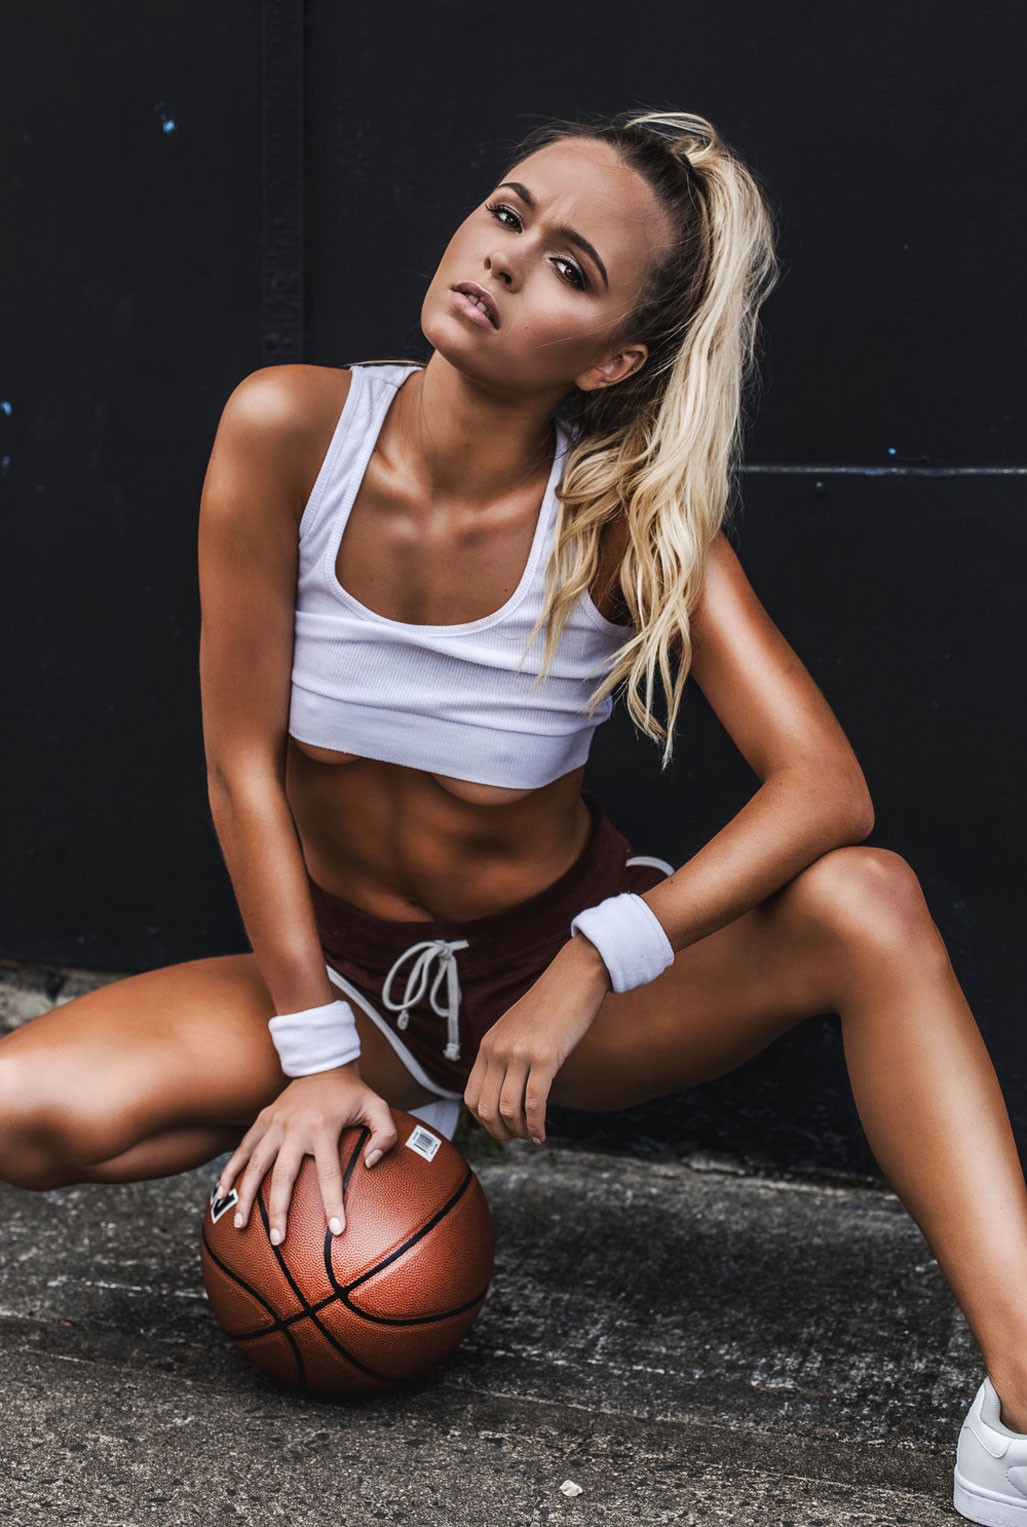 basketball with Natyse Chan by Jellan Merlant-Pilonchery